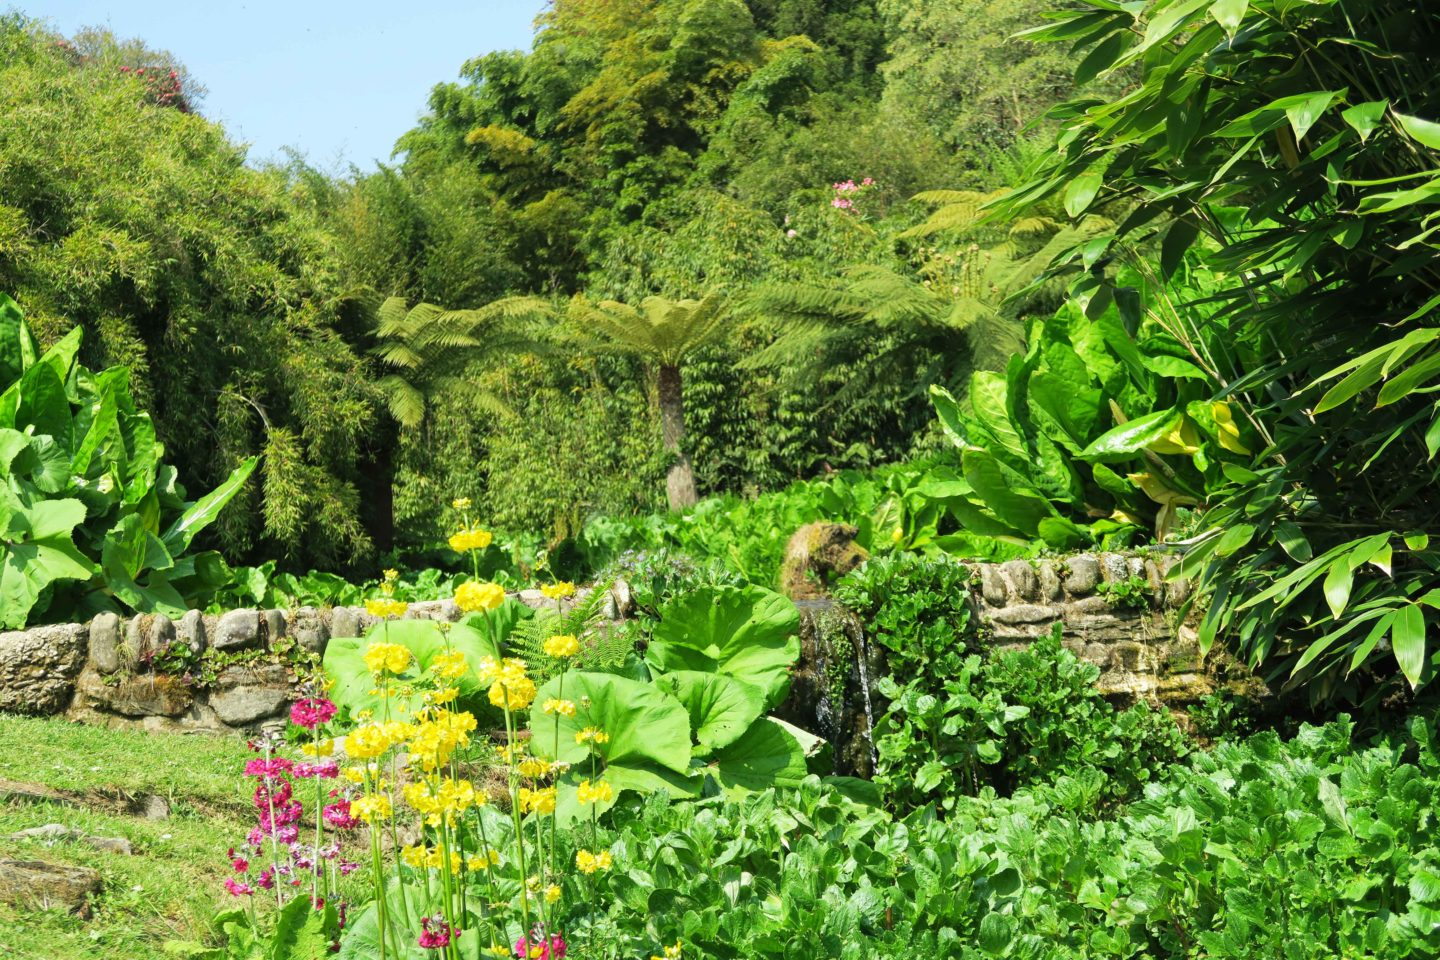 tebah gardens pond and plants in cornwall, england